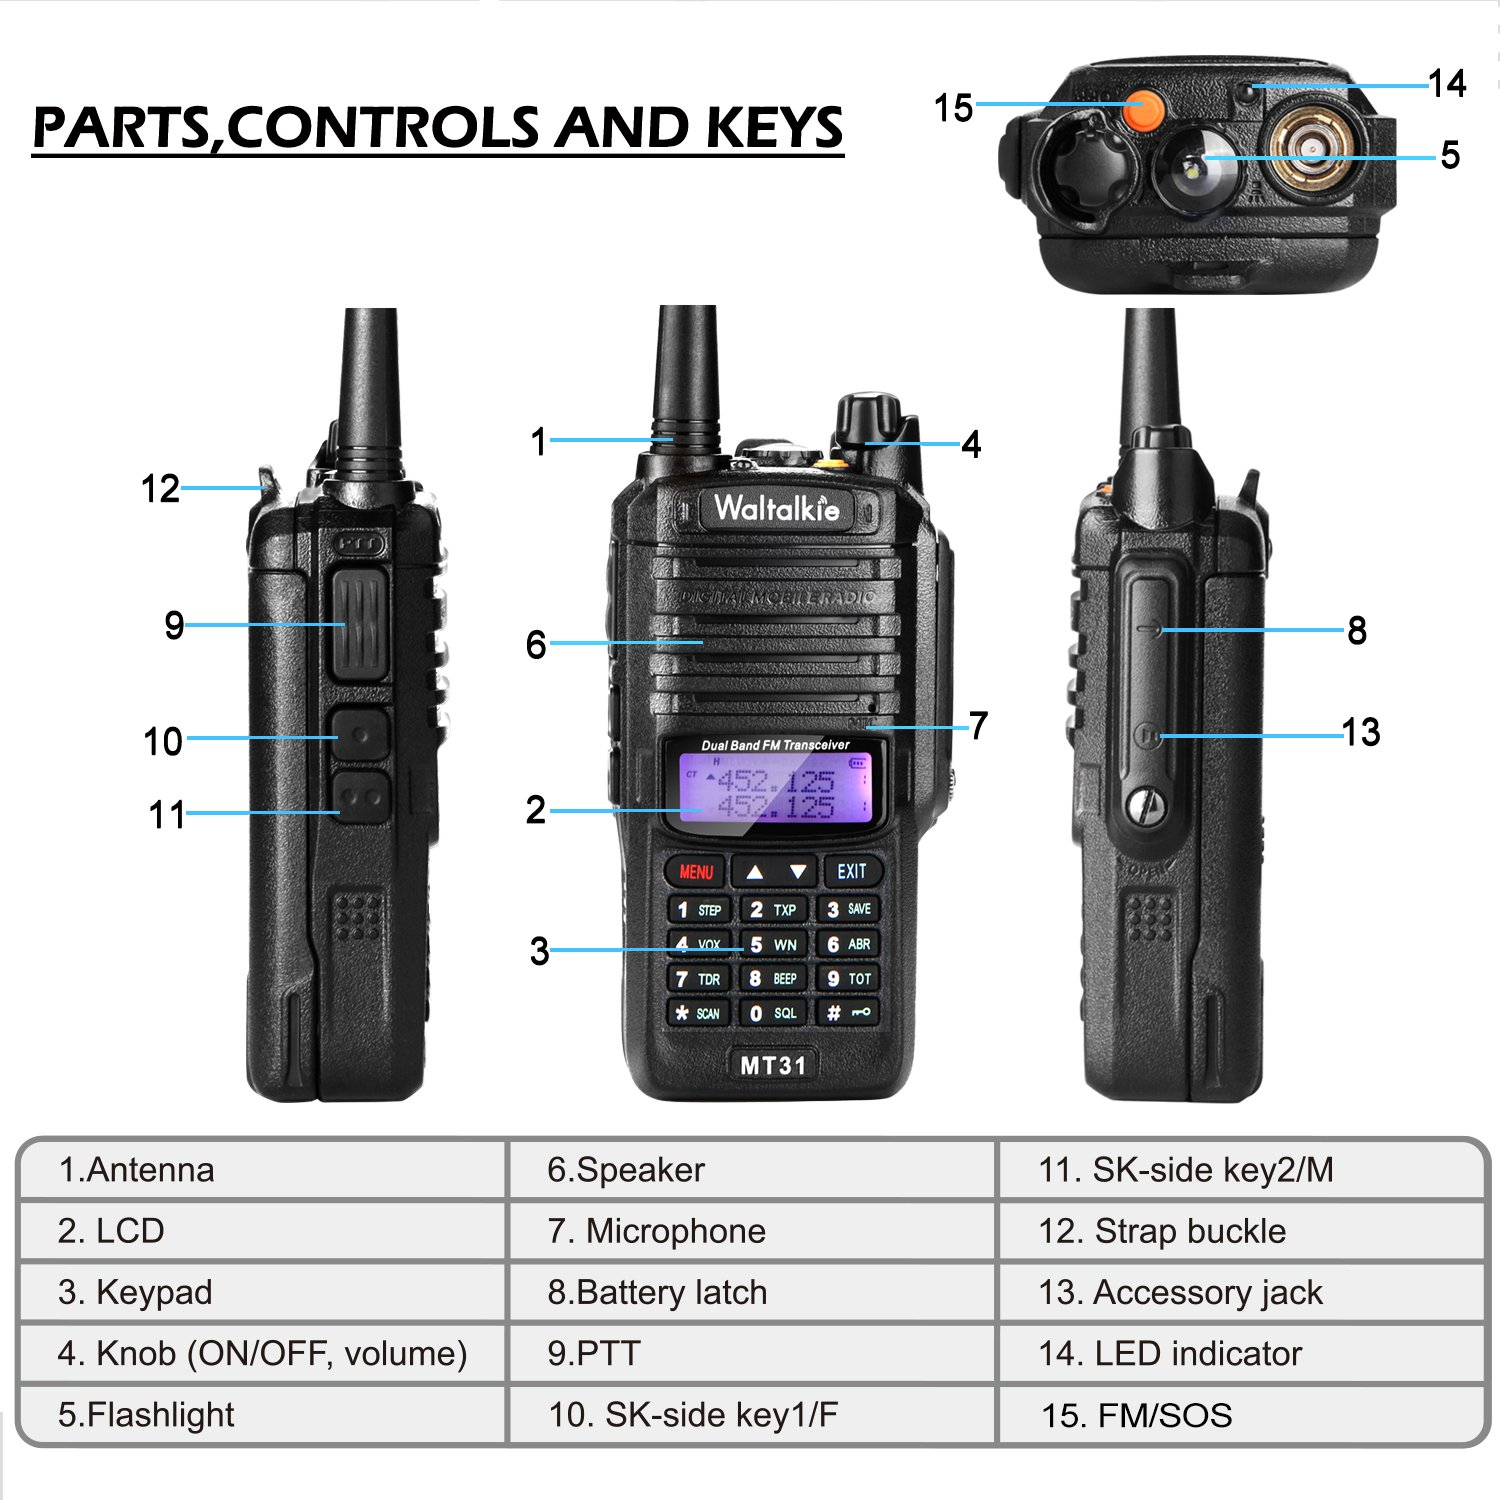 Wireless Radio Transceiver, IP66 Waterproof & Dustproof Two Way Radio Walkie Talkie with Headset/LED Flashlight/Battery/Charger for Indoor & Outdoor Activities by Waltalkie (Image #4)